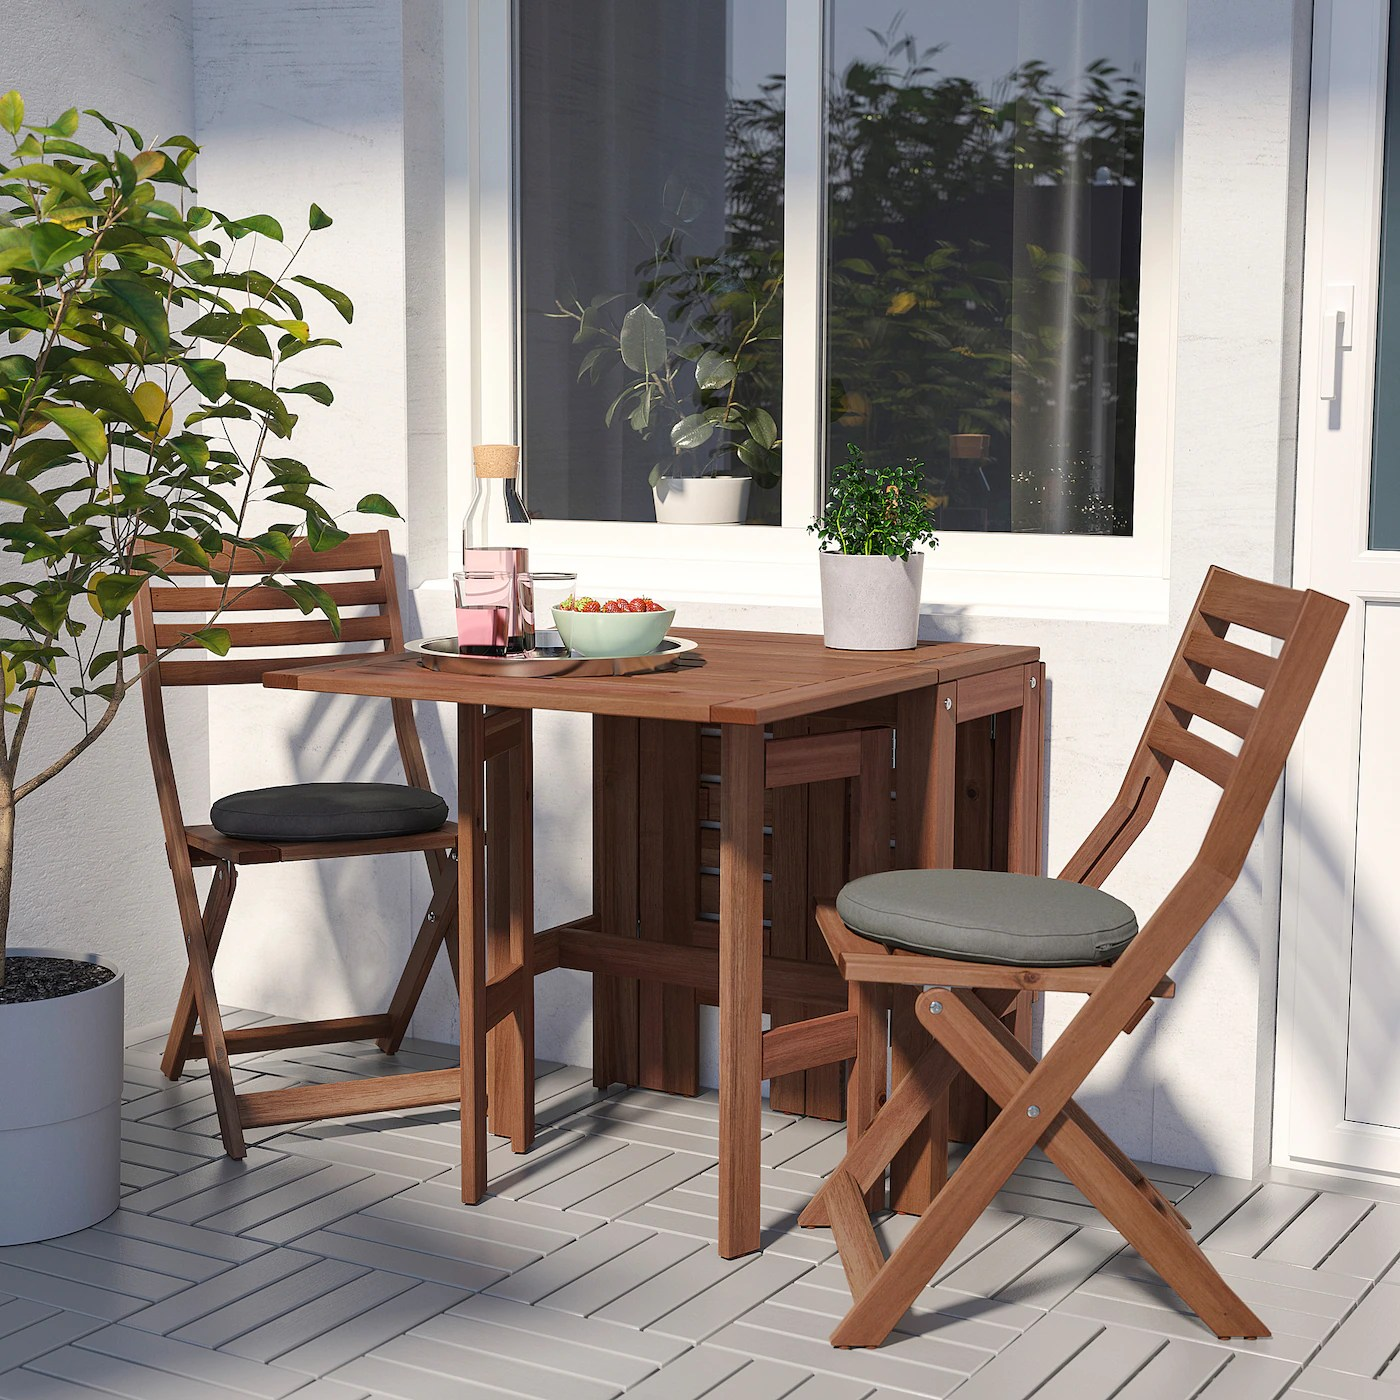 applaro gateleg table outdoor brown stained 34 83 131x70 cm